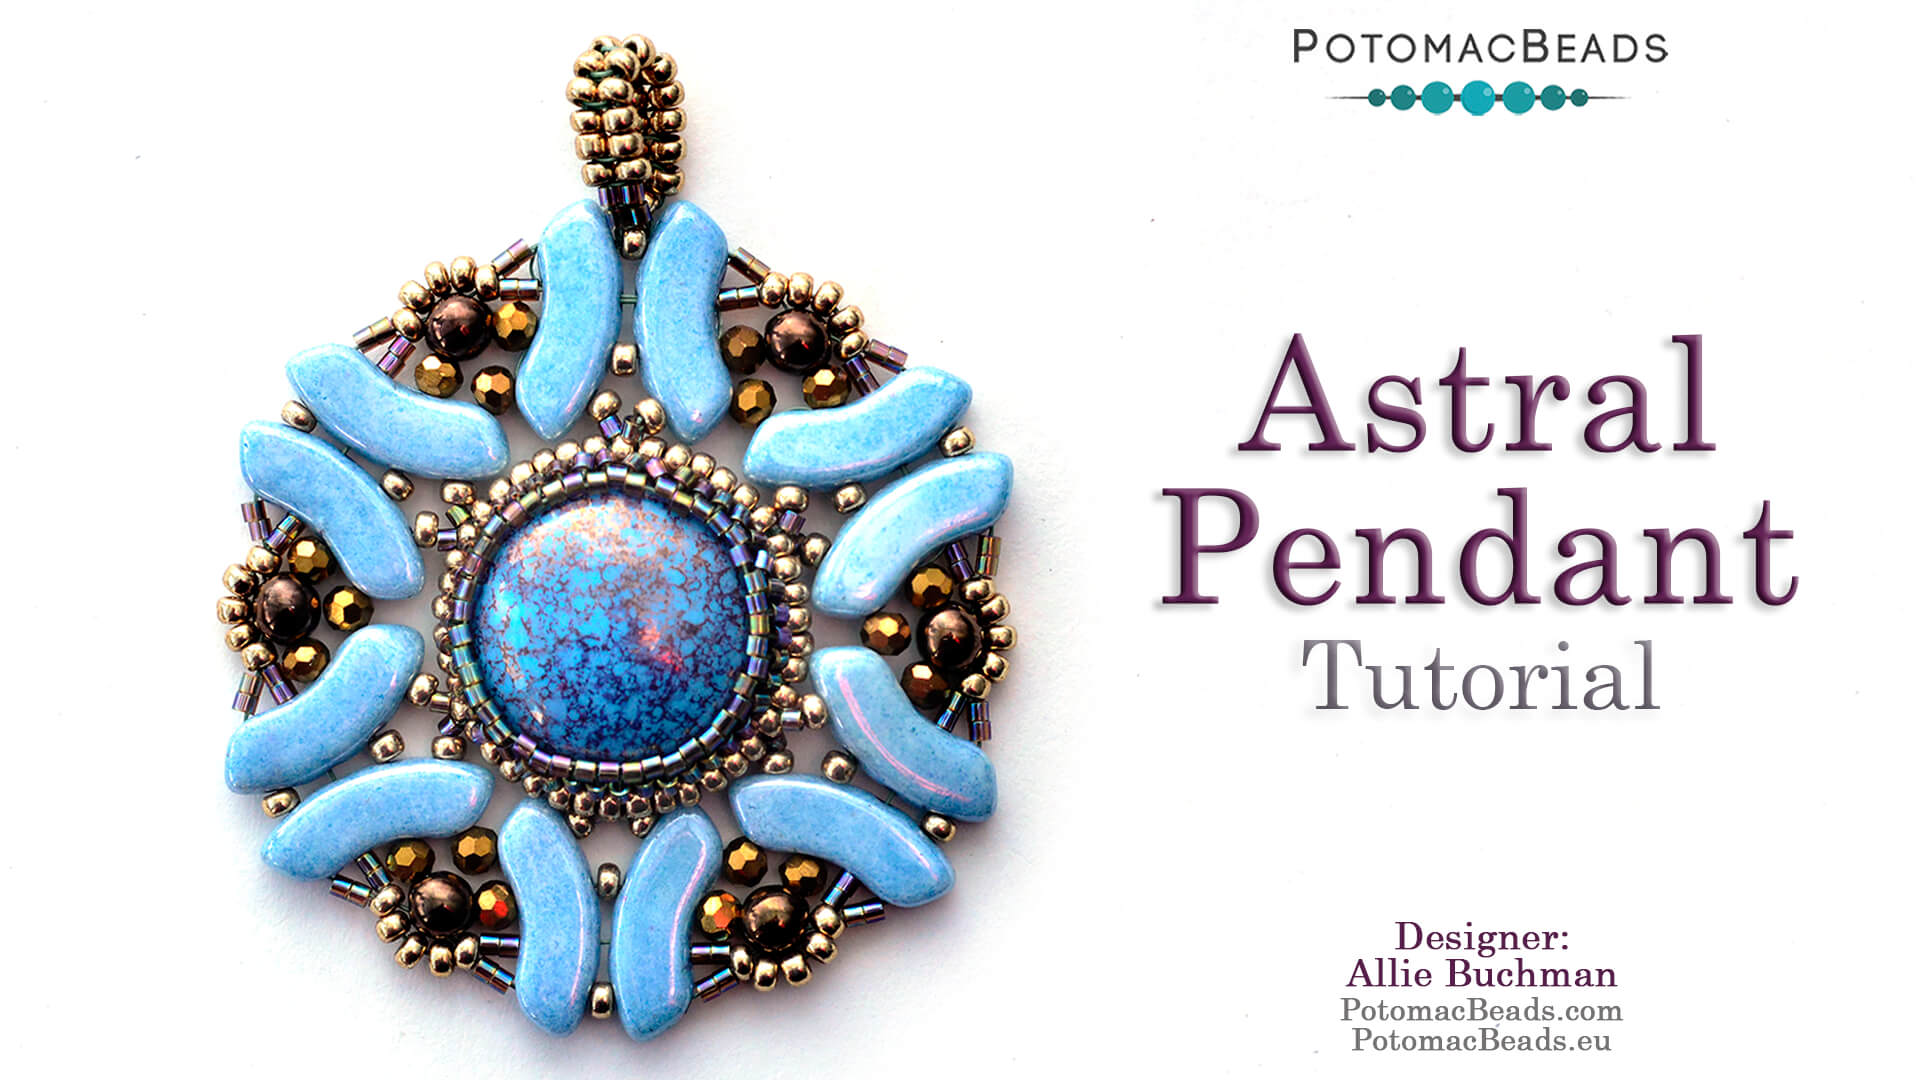 How to Bead Jewelry / Videos Sorted by Beads / QuadBow & PieDuo Bead Videos / Astral Pendant Tutorial